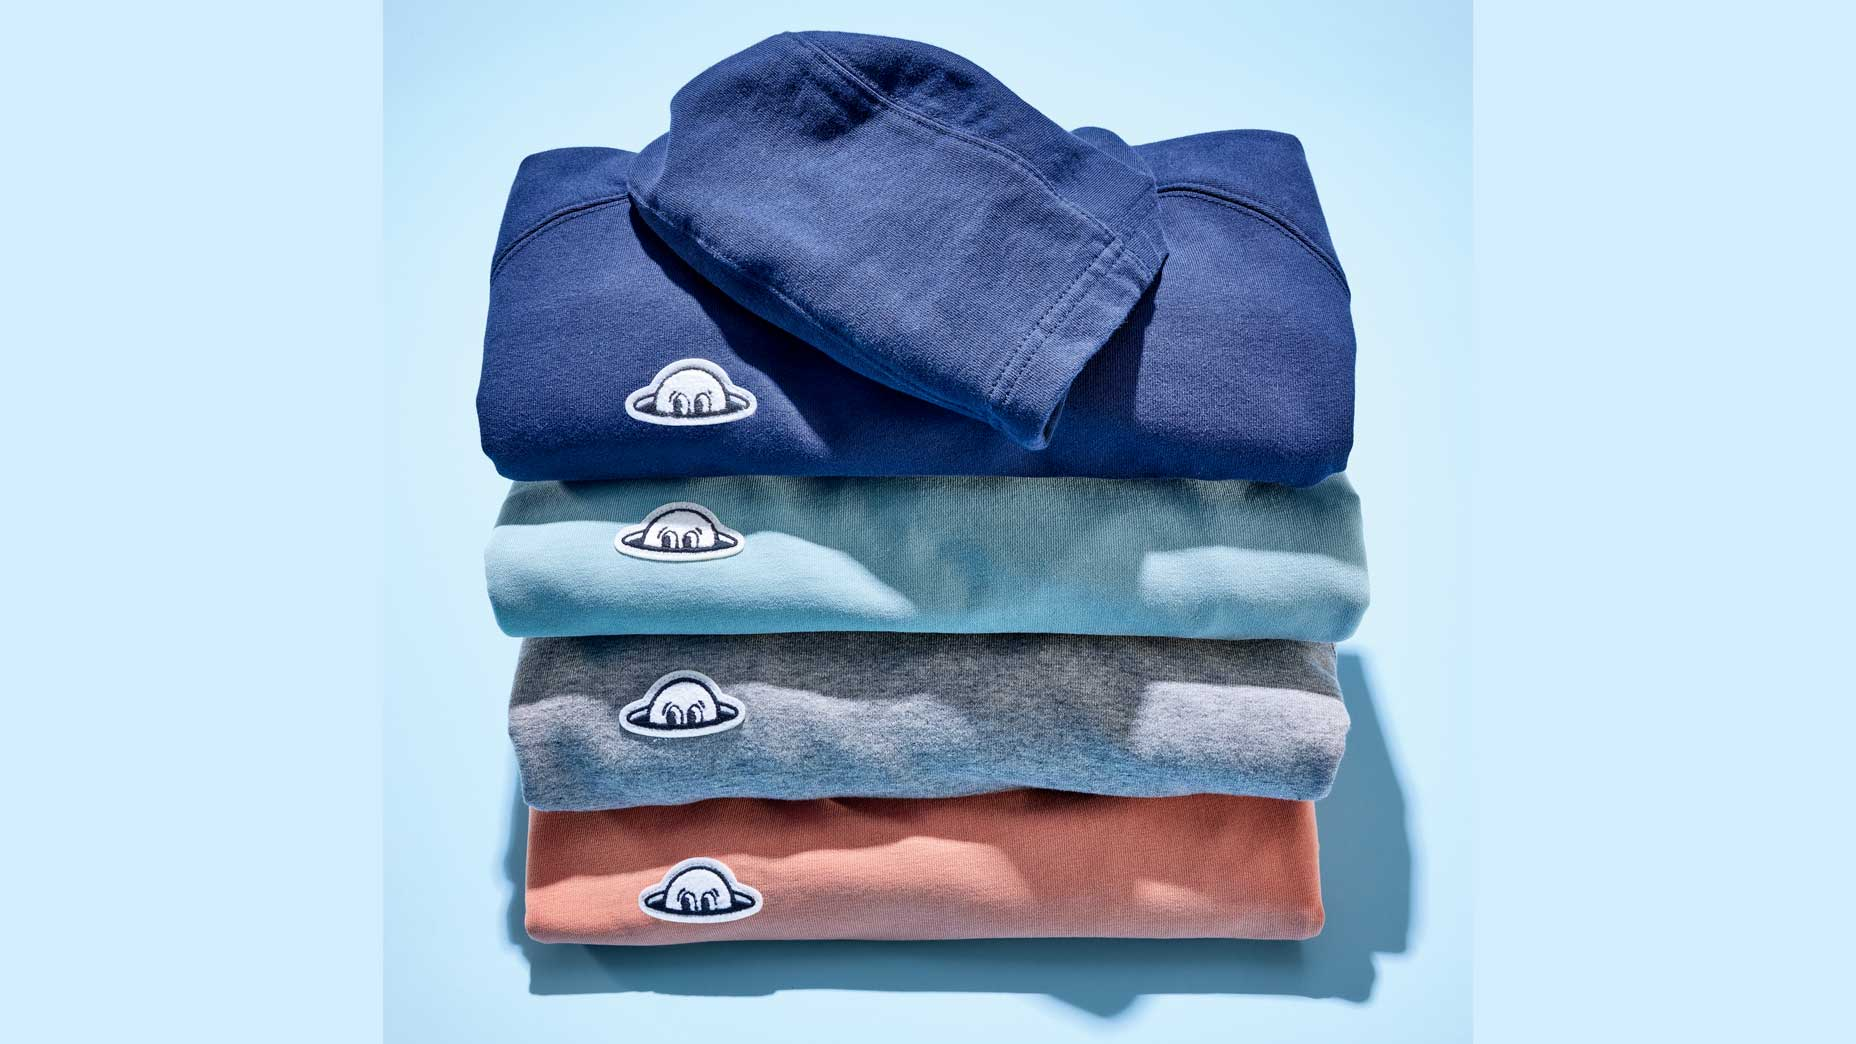 A stack of four Radmor Higgins golf hoodies against a baby blue background